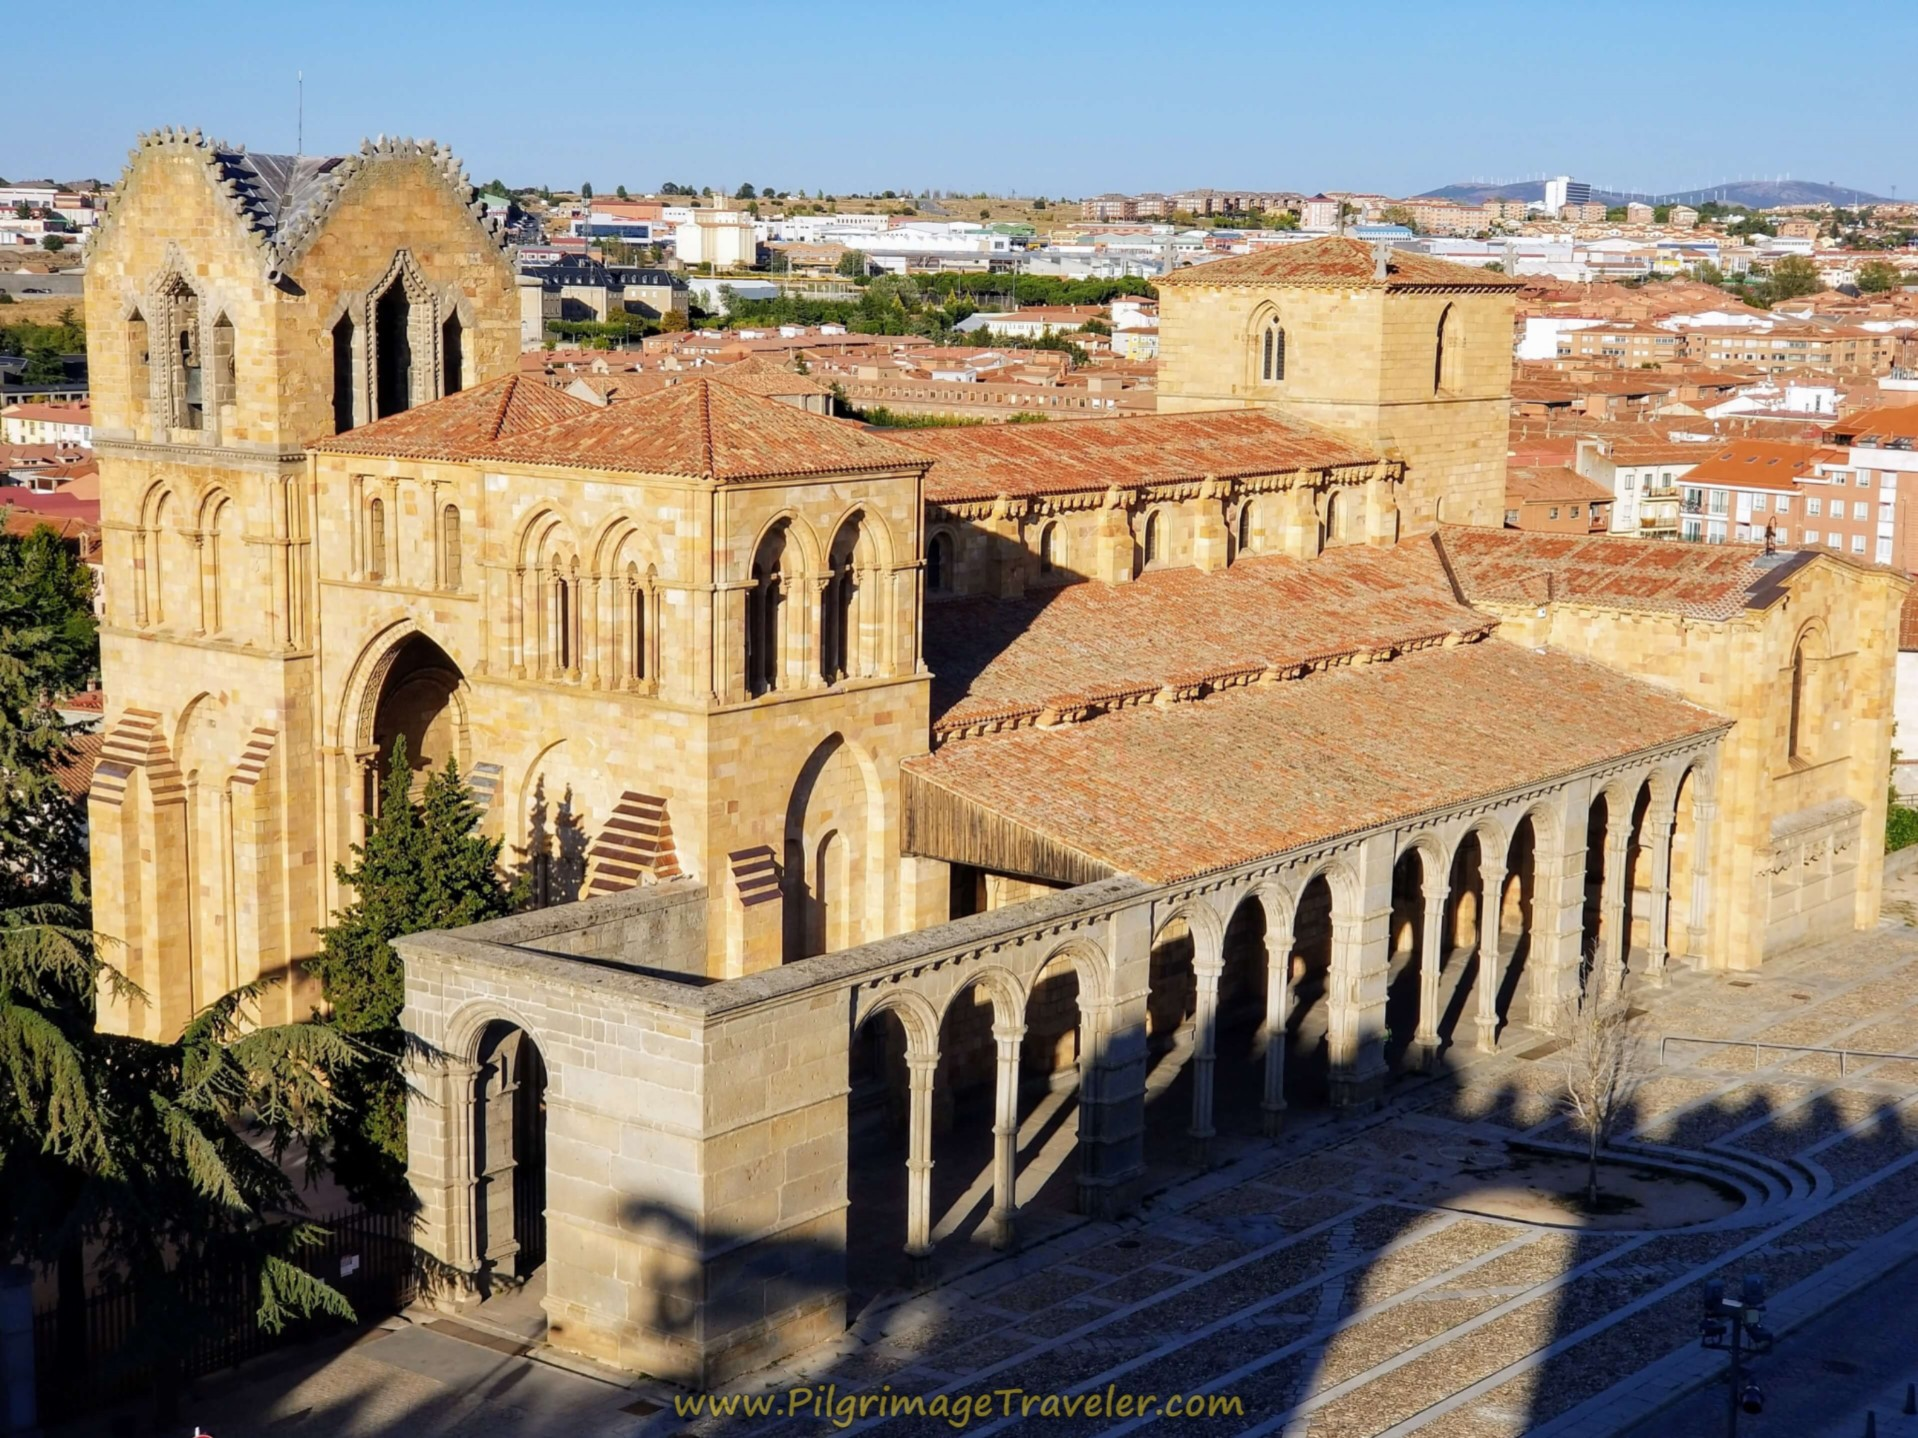 View of the Basilica de San Vicente, in Ávila, Spain, from the fortress walls.